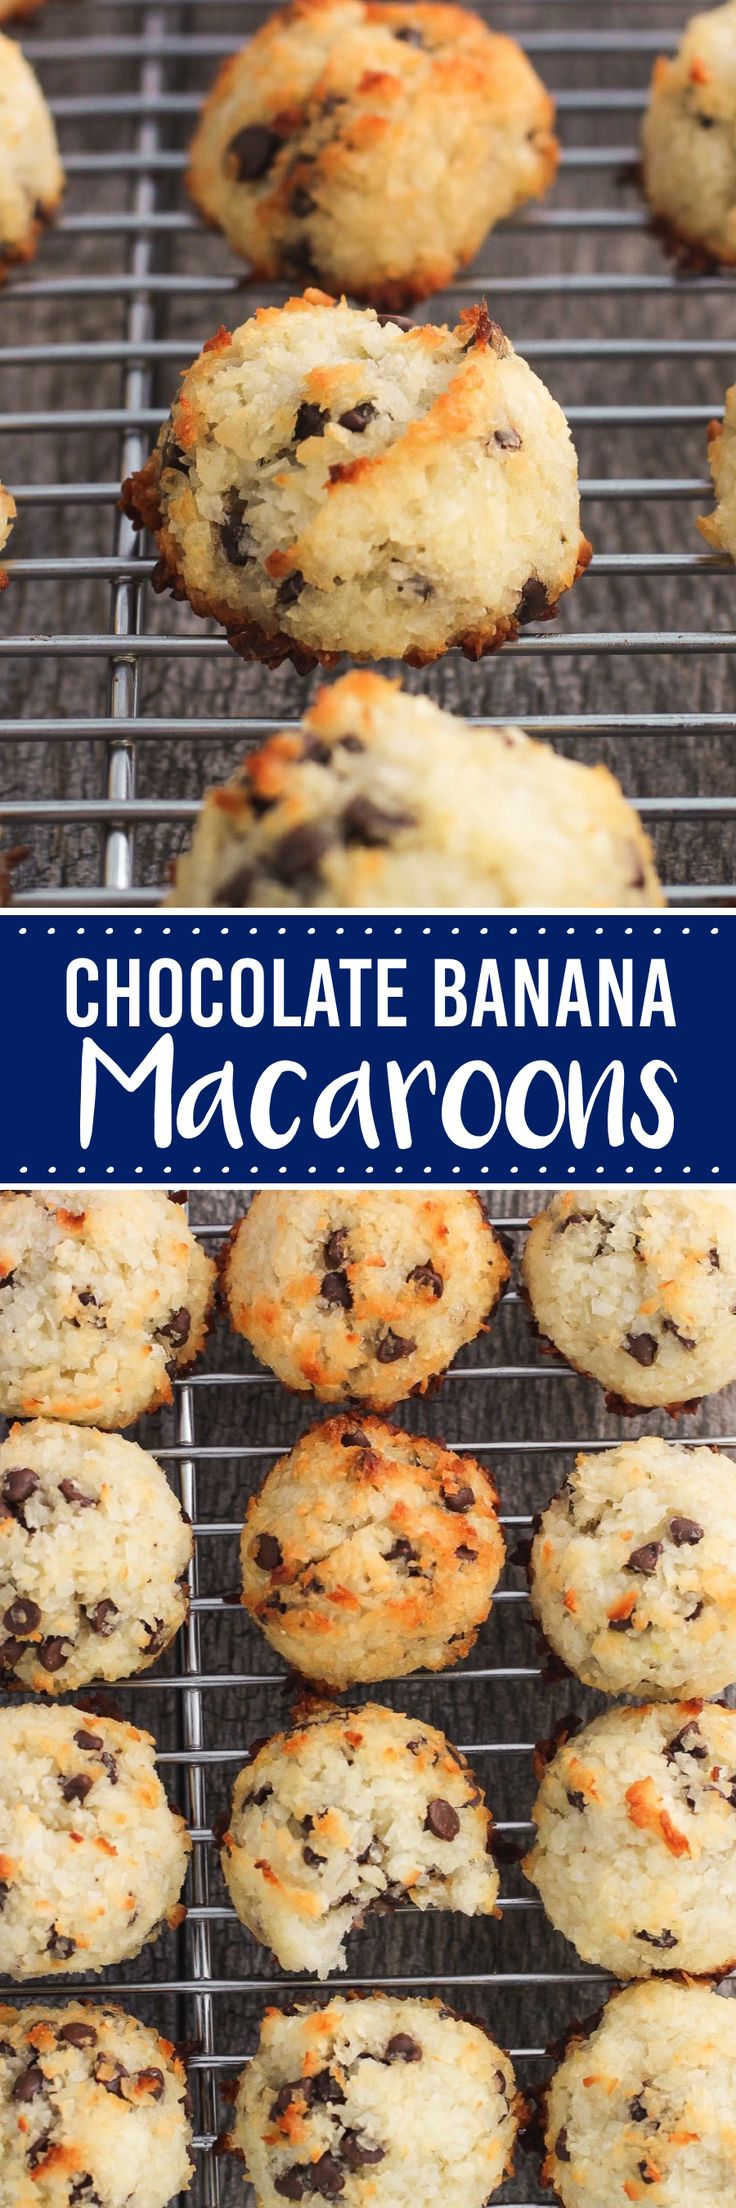 Chocolate banana macaroons are an easy and chewy coconut cookie that tastes like chocolate chip banana bread!